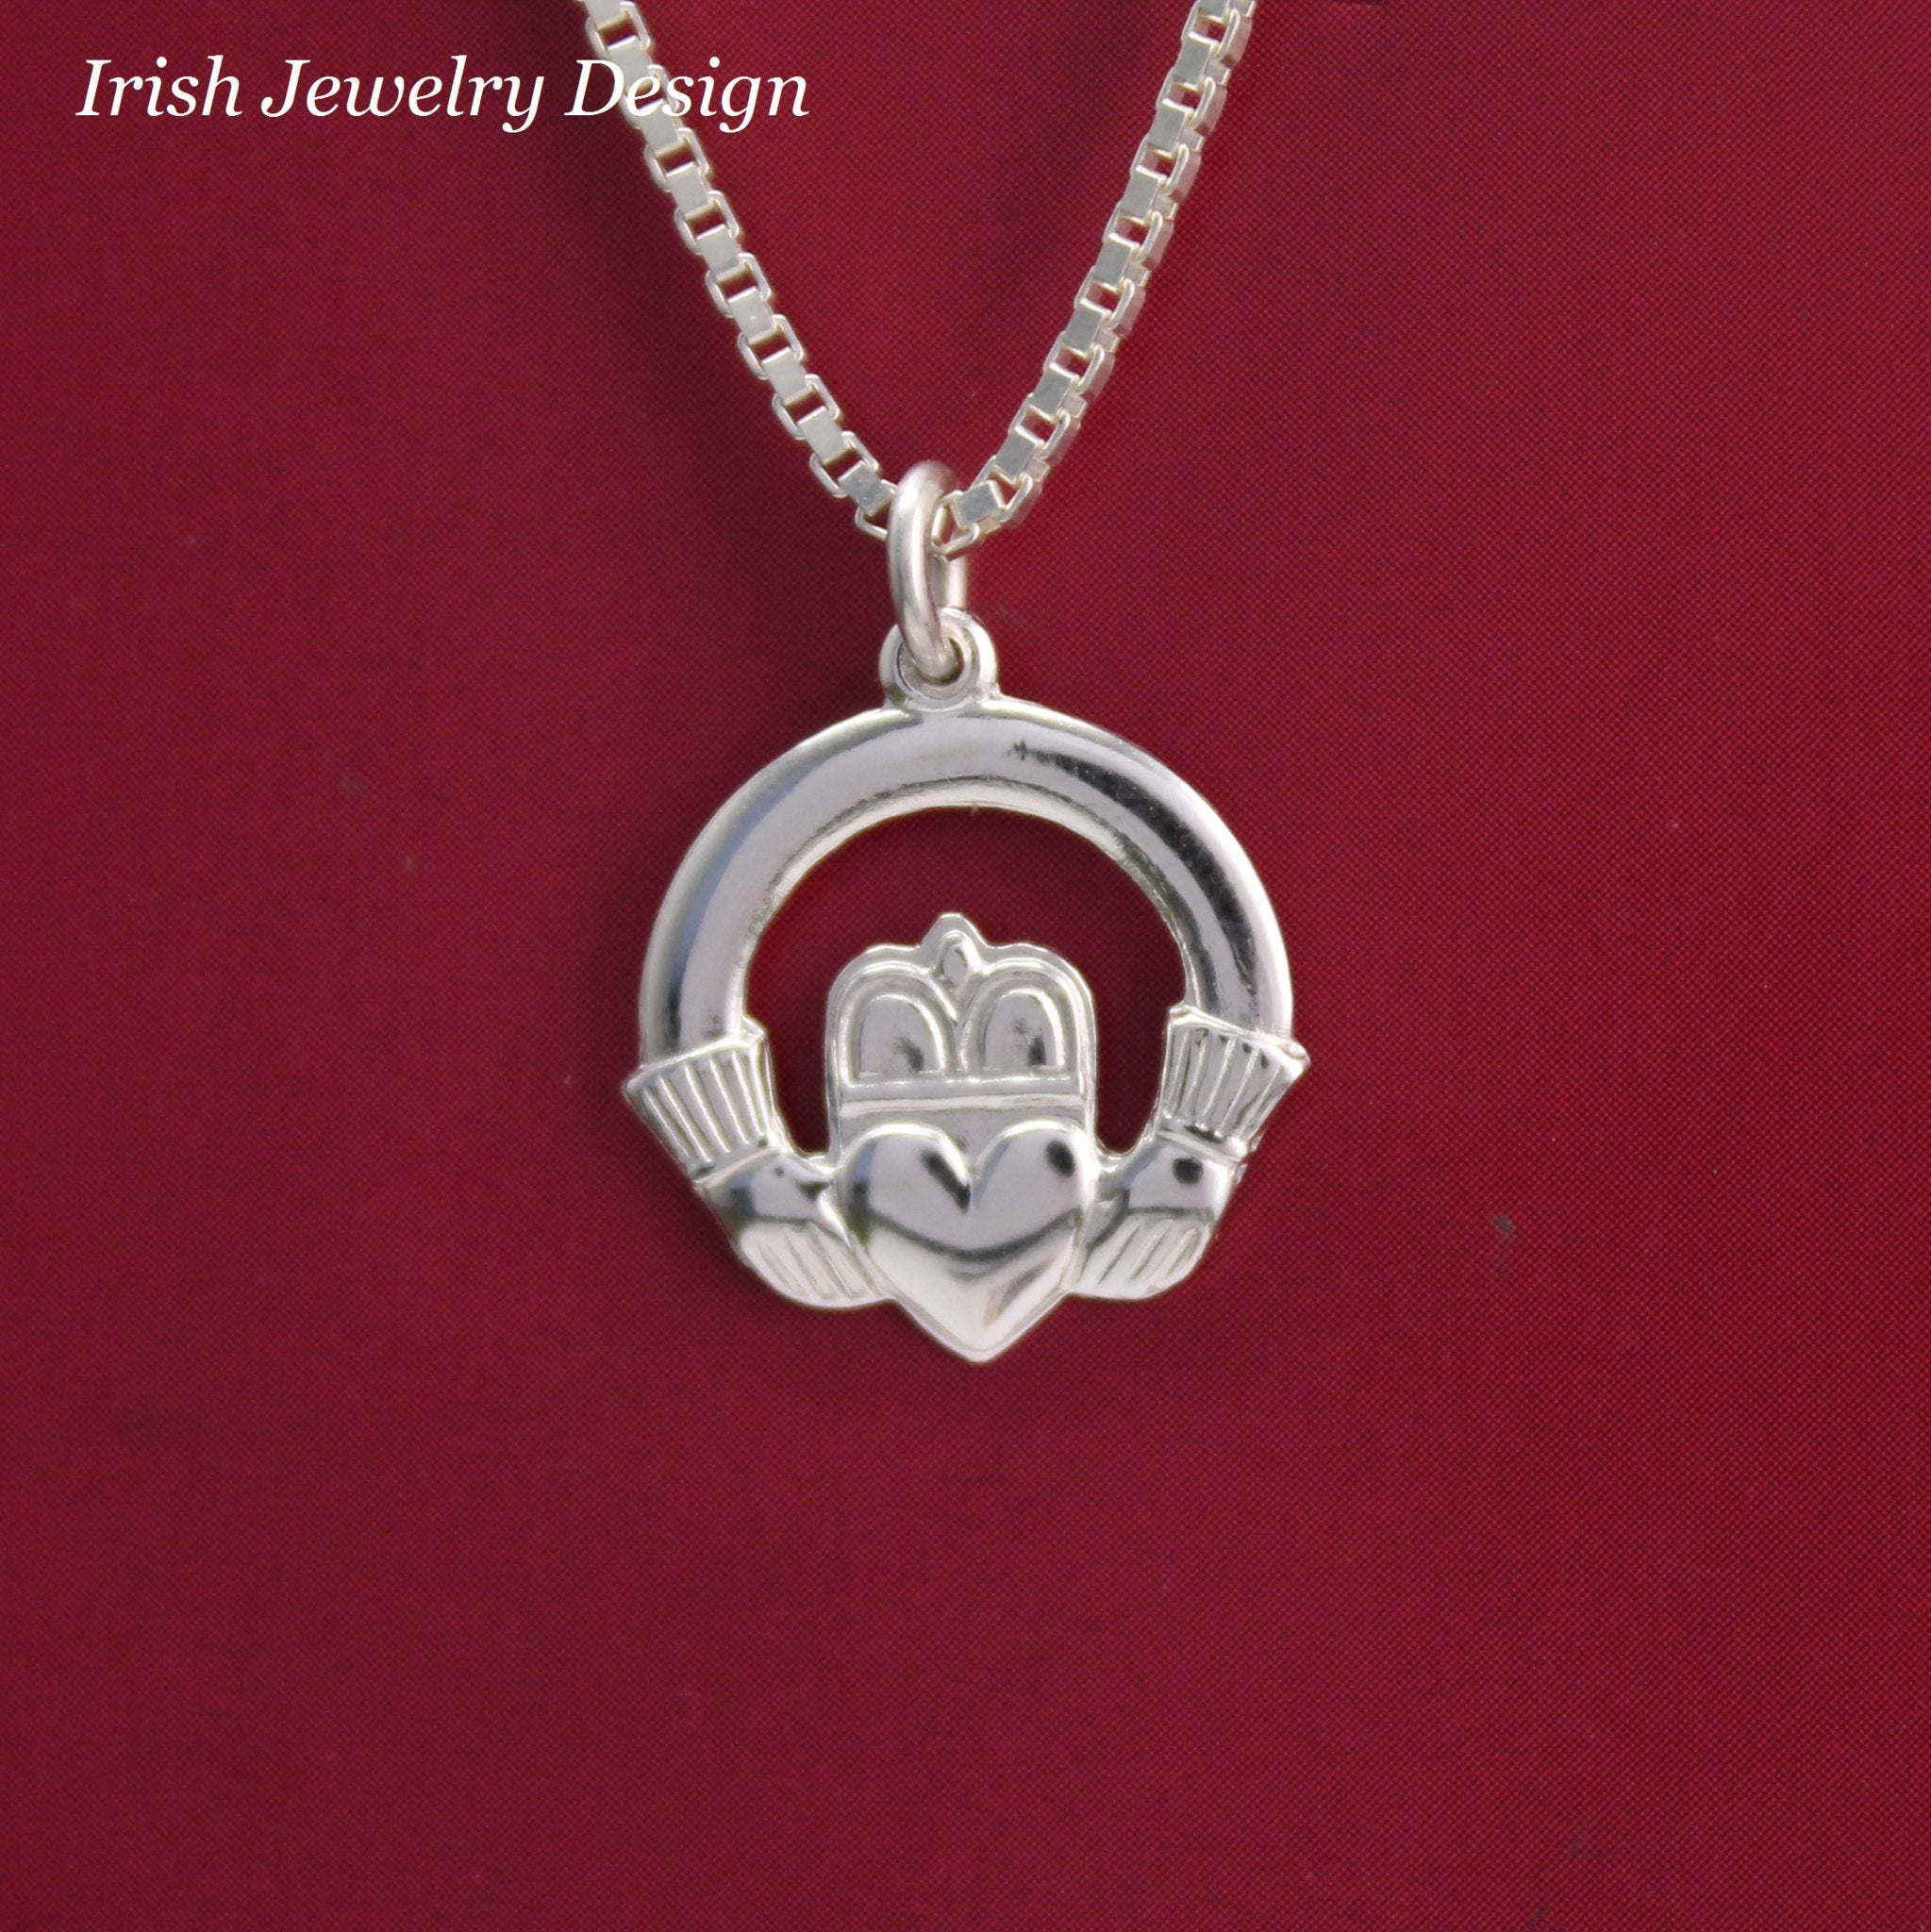 sun charm jewelry pewter trilogy celtic ebay necklace pendant black jnt itm silver